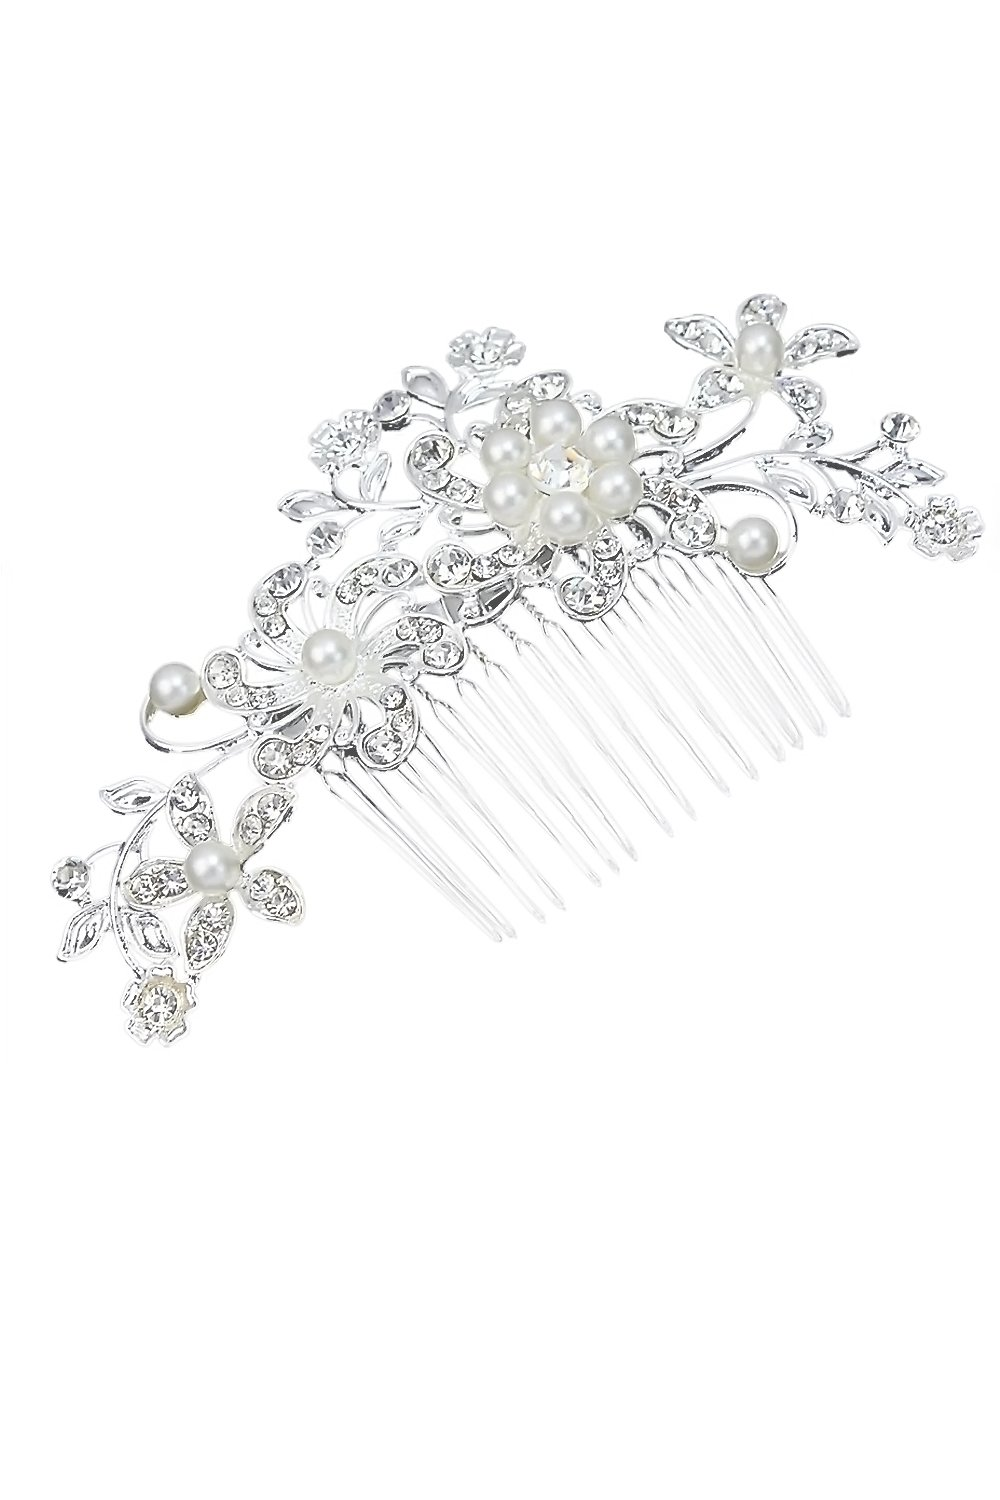 Elegant Women Hairpin Rhinestone Flower Hair Comb Clip Shiny Wedding Bridal Hair Accessories Elisona